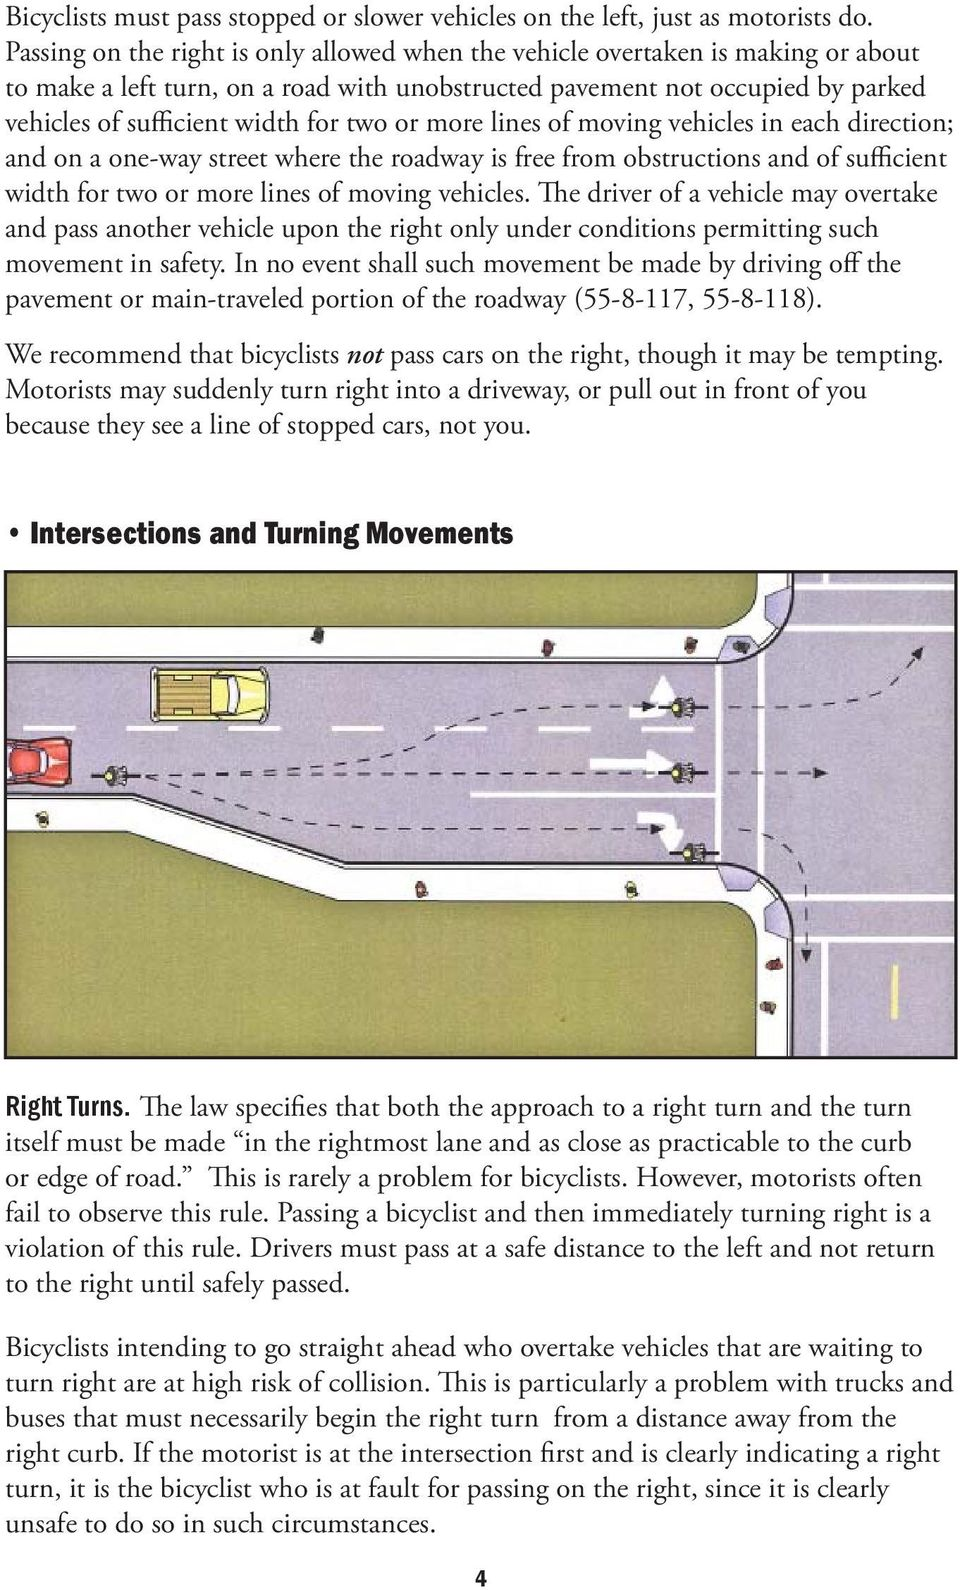 two or more lines of moving vehicles in each direction; and on a one-way street where the roadway is free from obstructions and of sufficient width for two or more lines of moving vehicles.